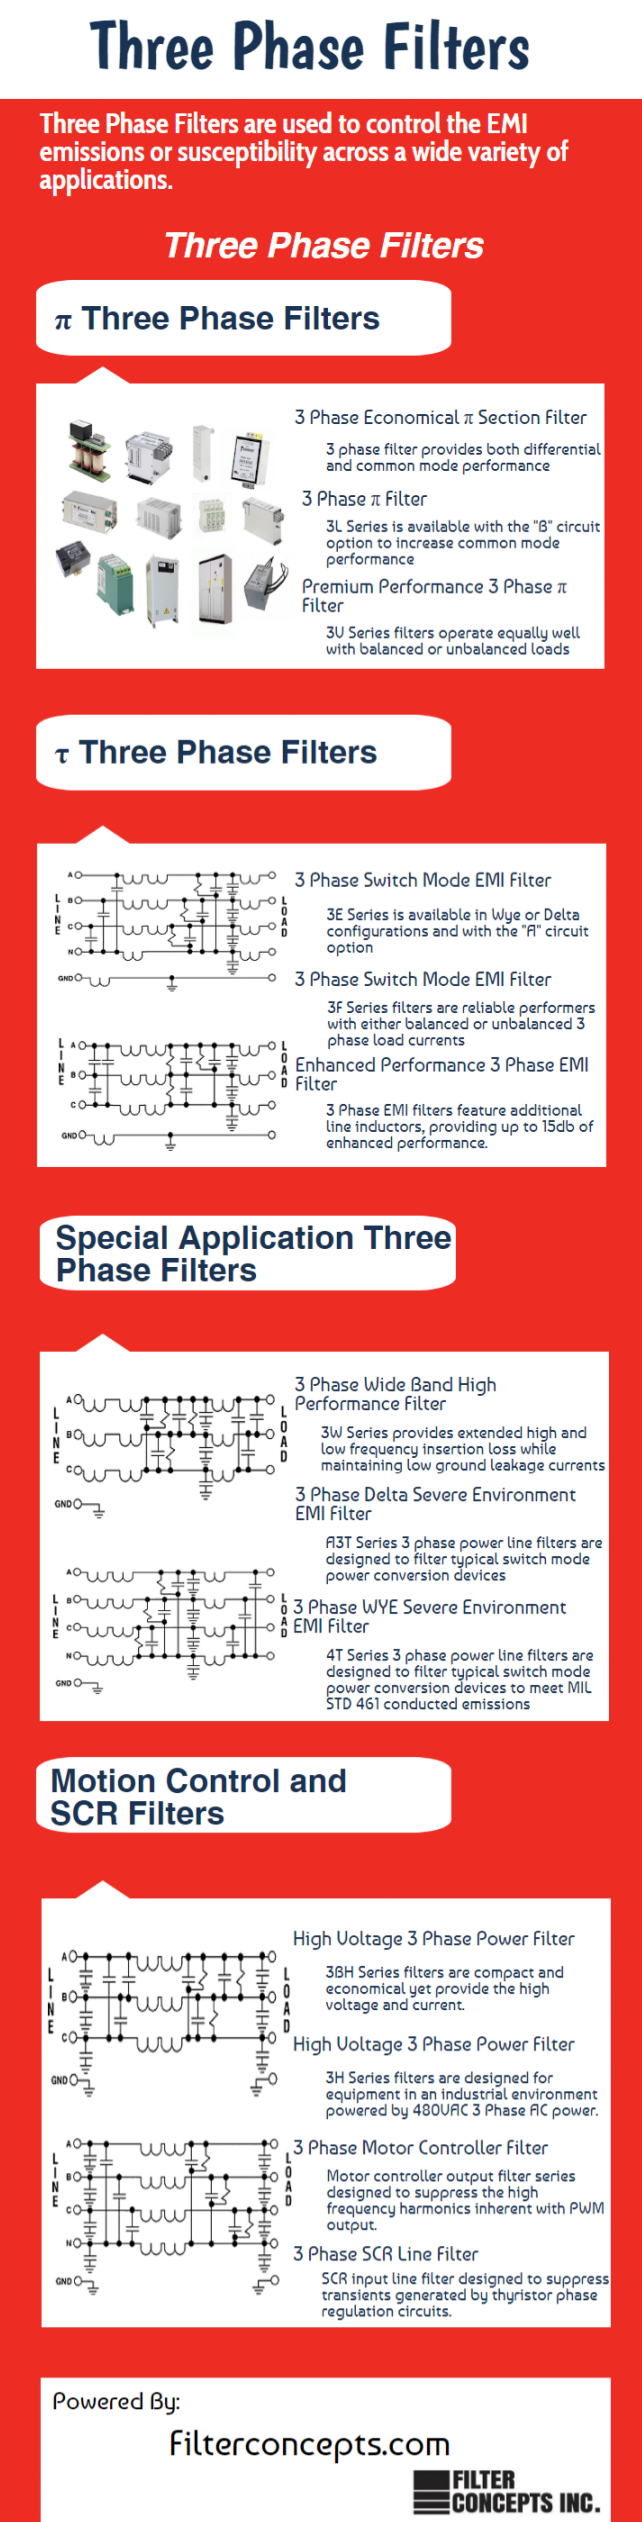 In This Infographic We Highlight The List Of Filter Concepts Inc Three Phase Emi Filters And Rfi Filters Filter Concepts Is A Worldw Filters Emi Ac Filters